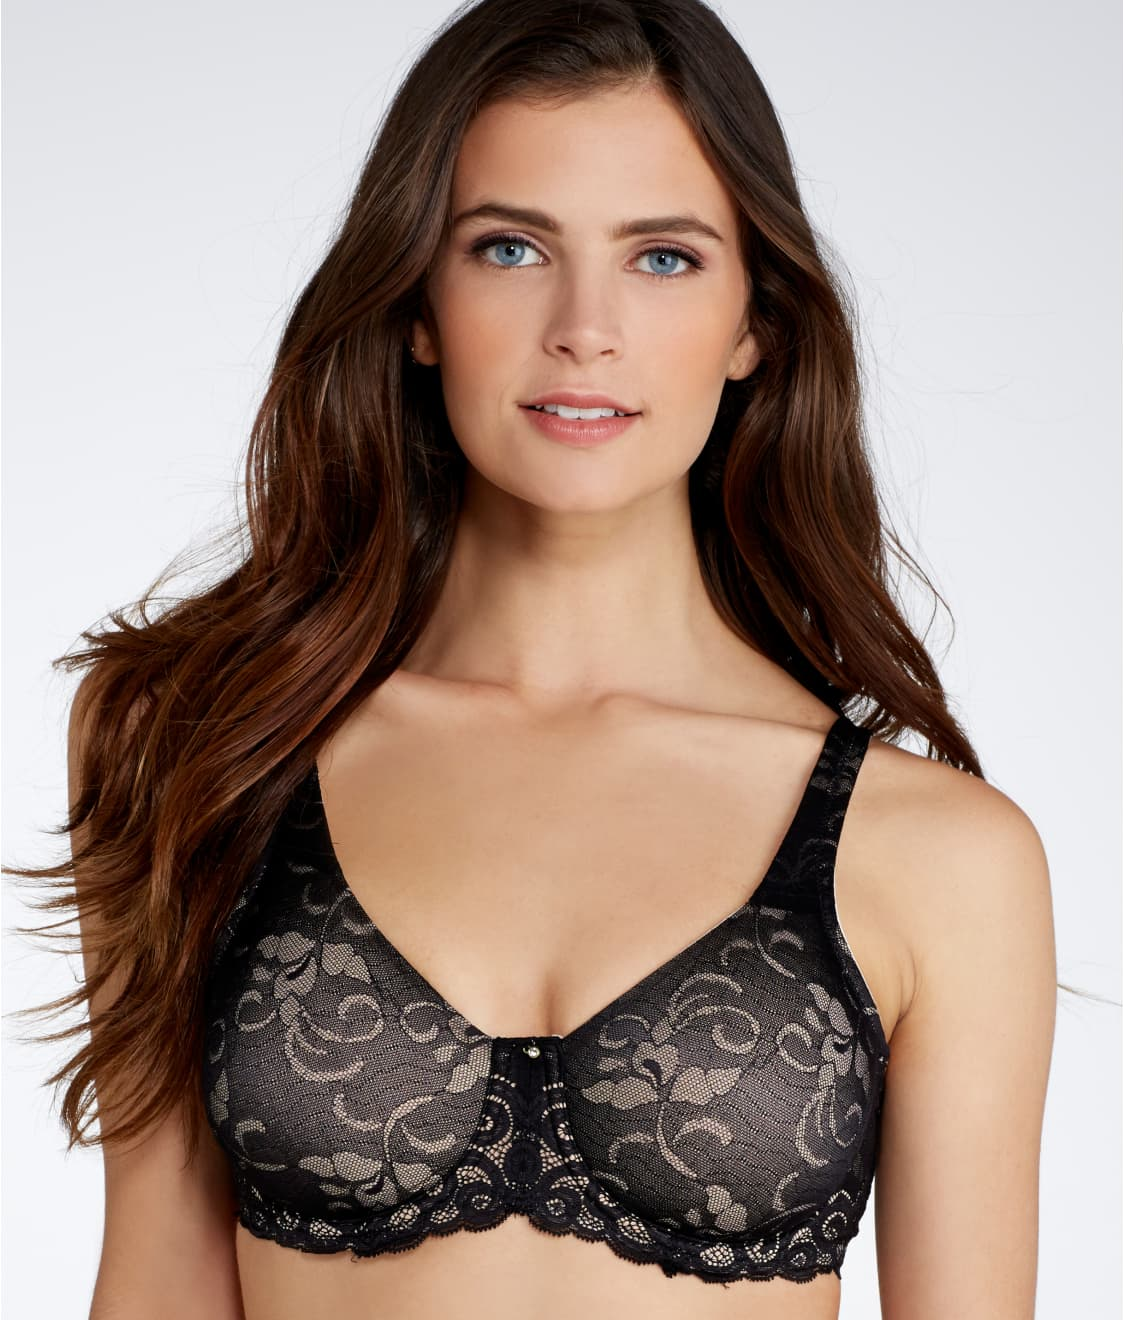 b482a61ff3 Lilyette Beautiful Support Lace Minimizer Bra